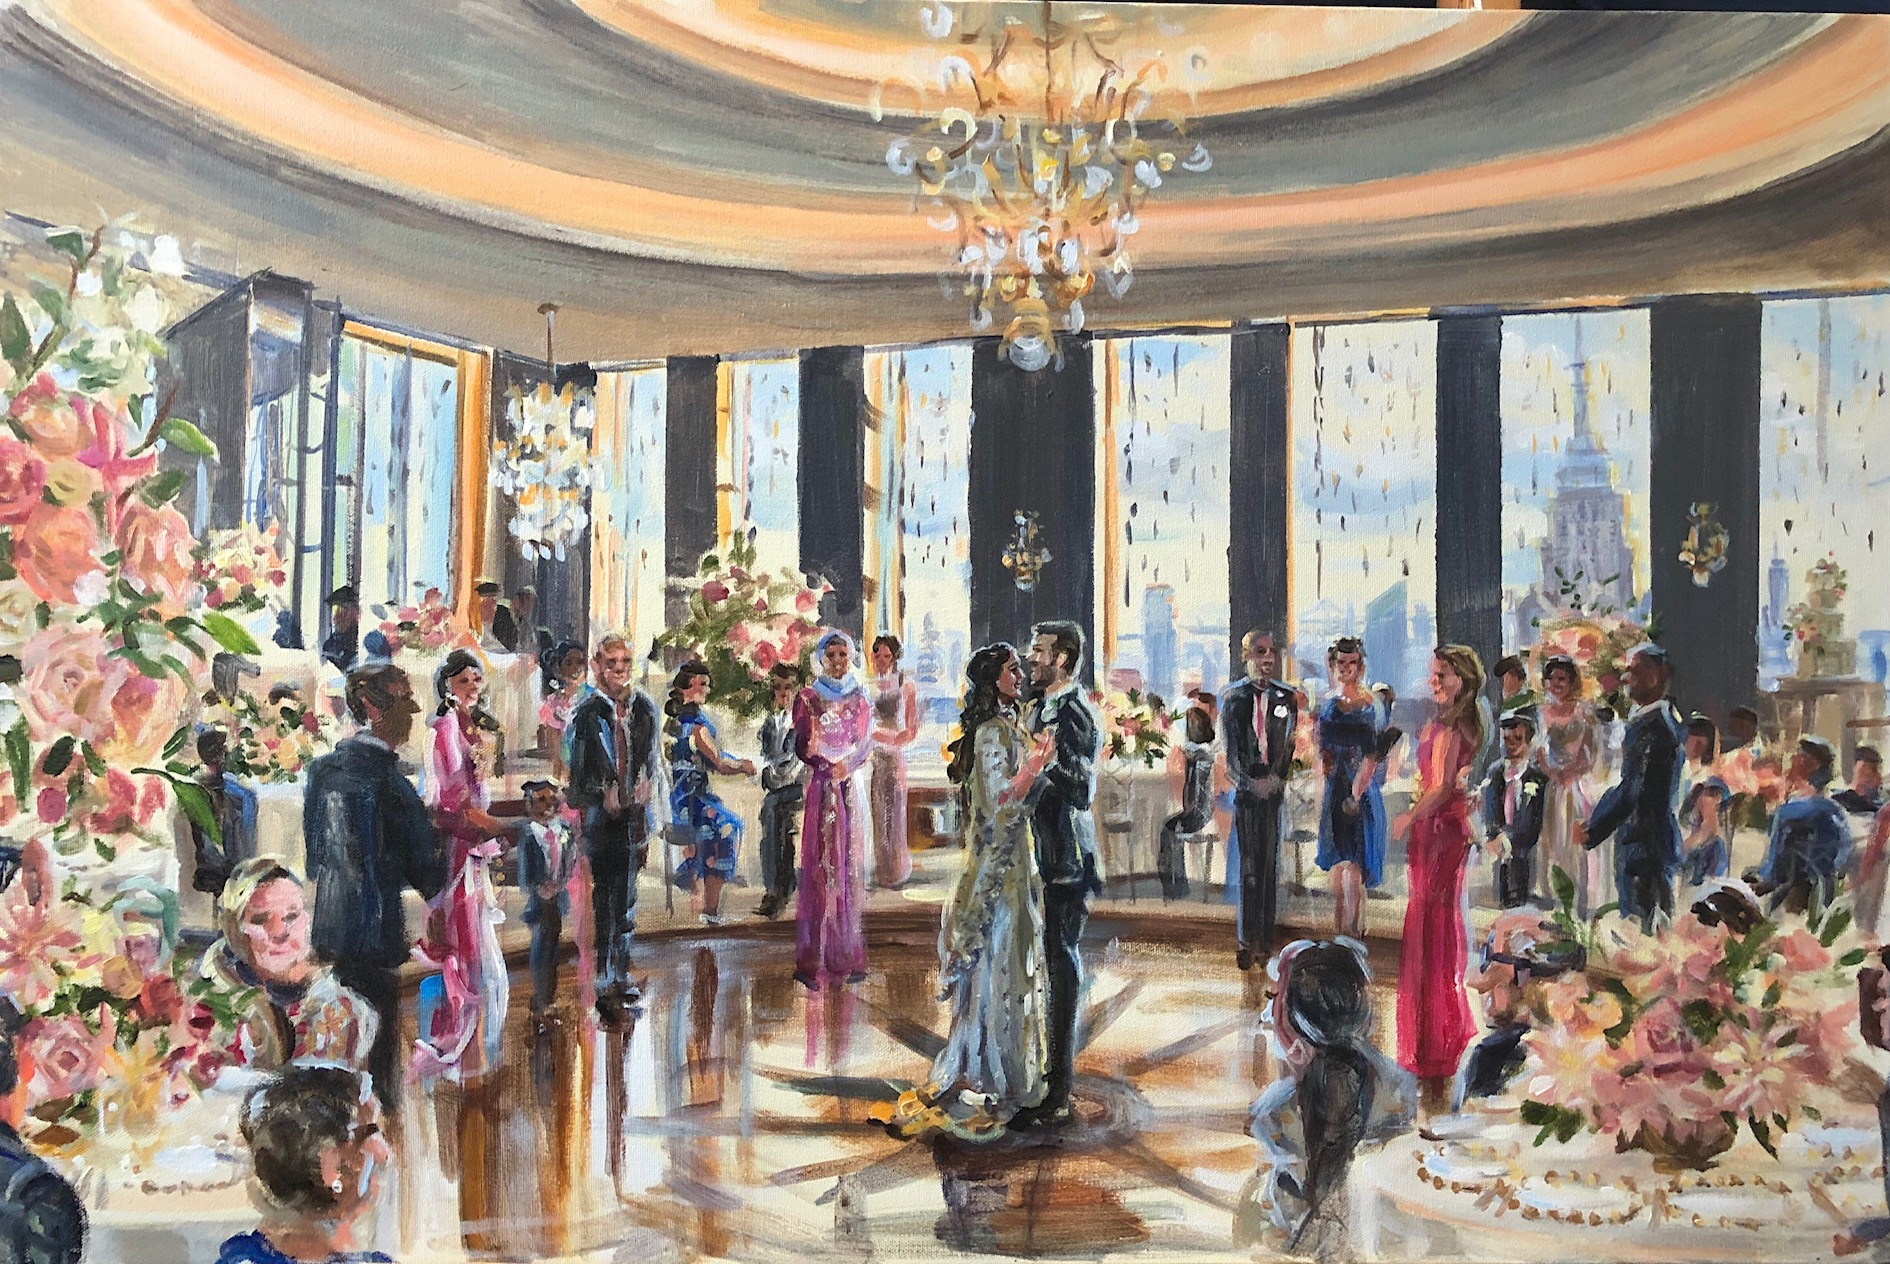 rainbow room wedding painting.jpg